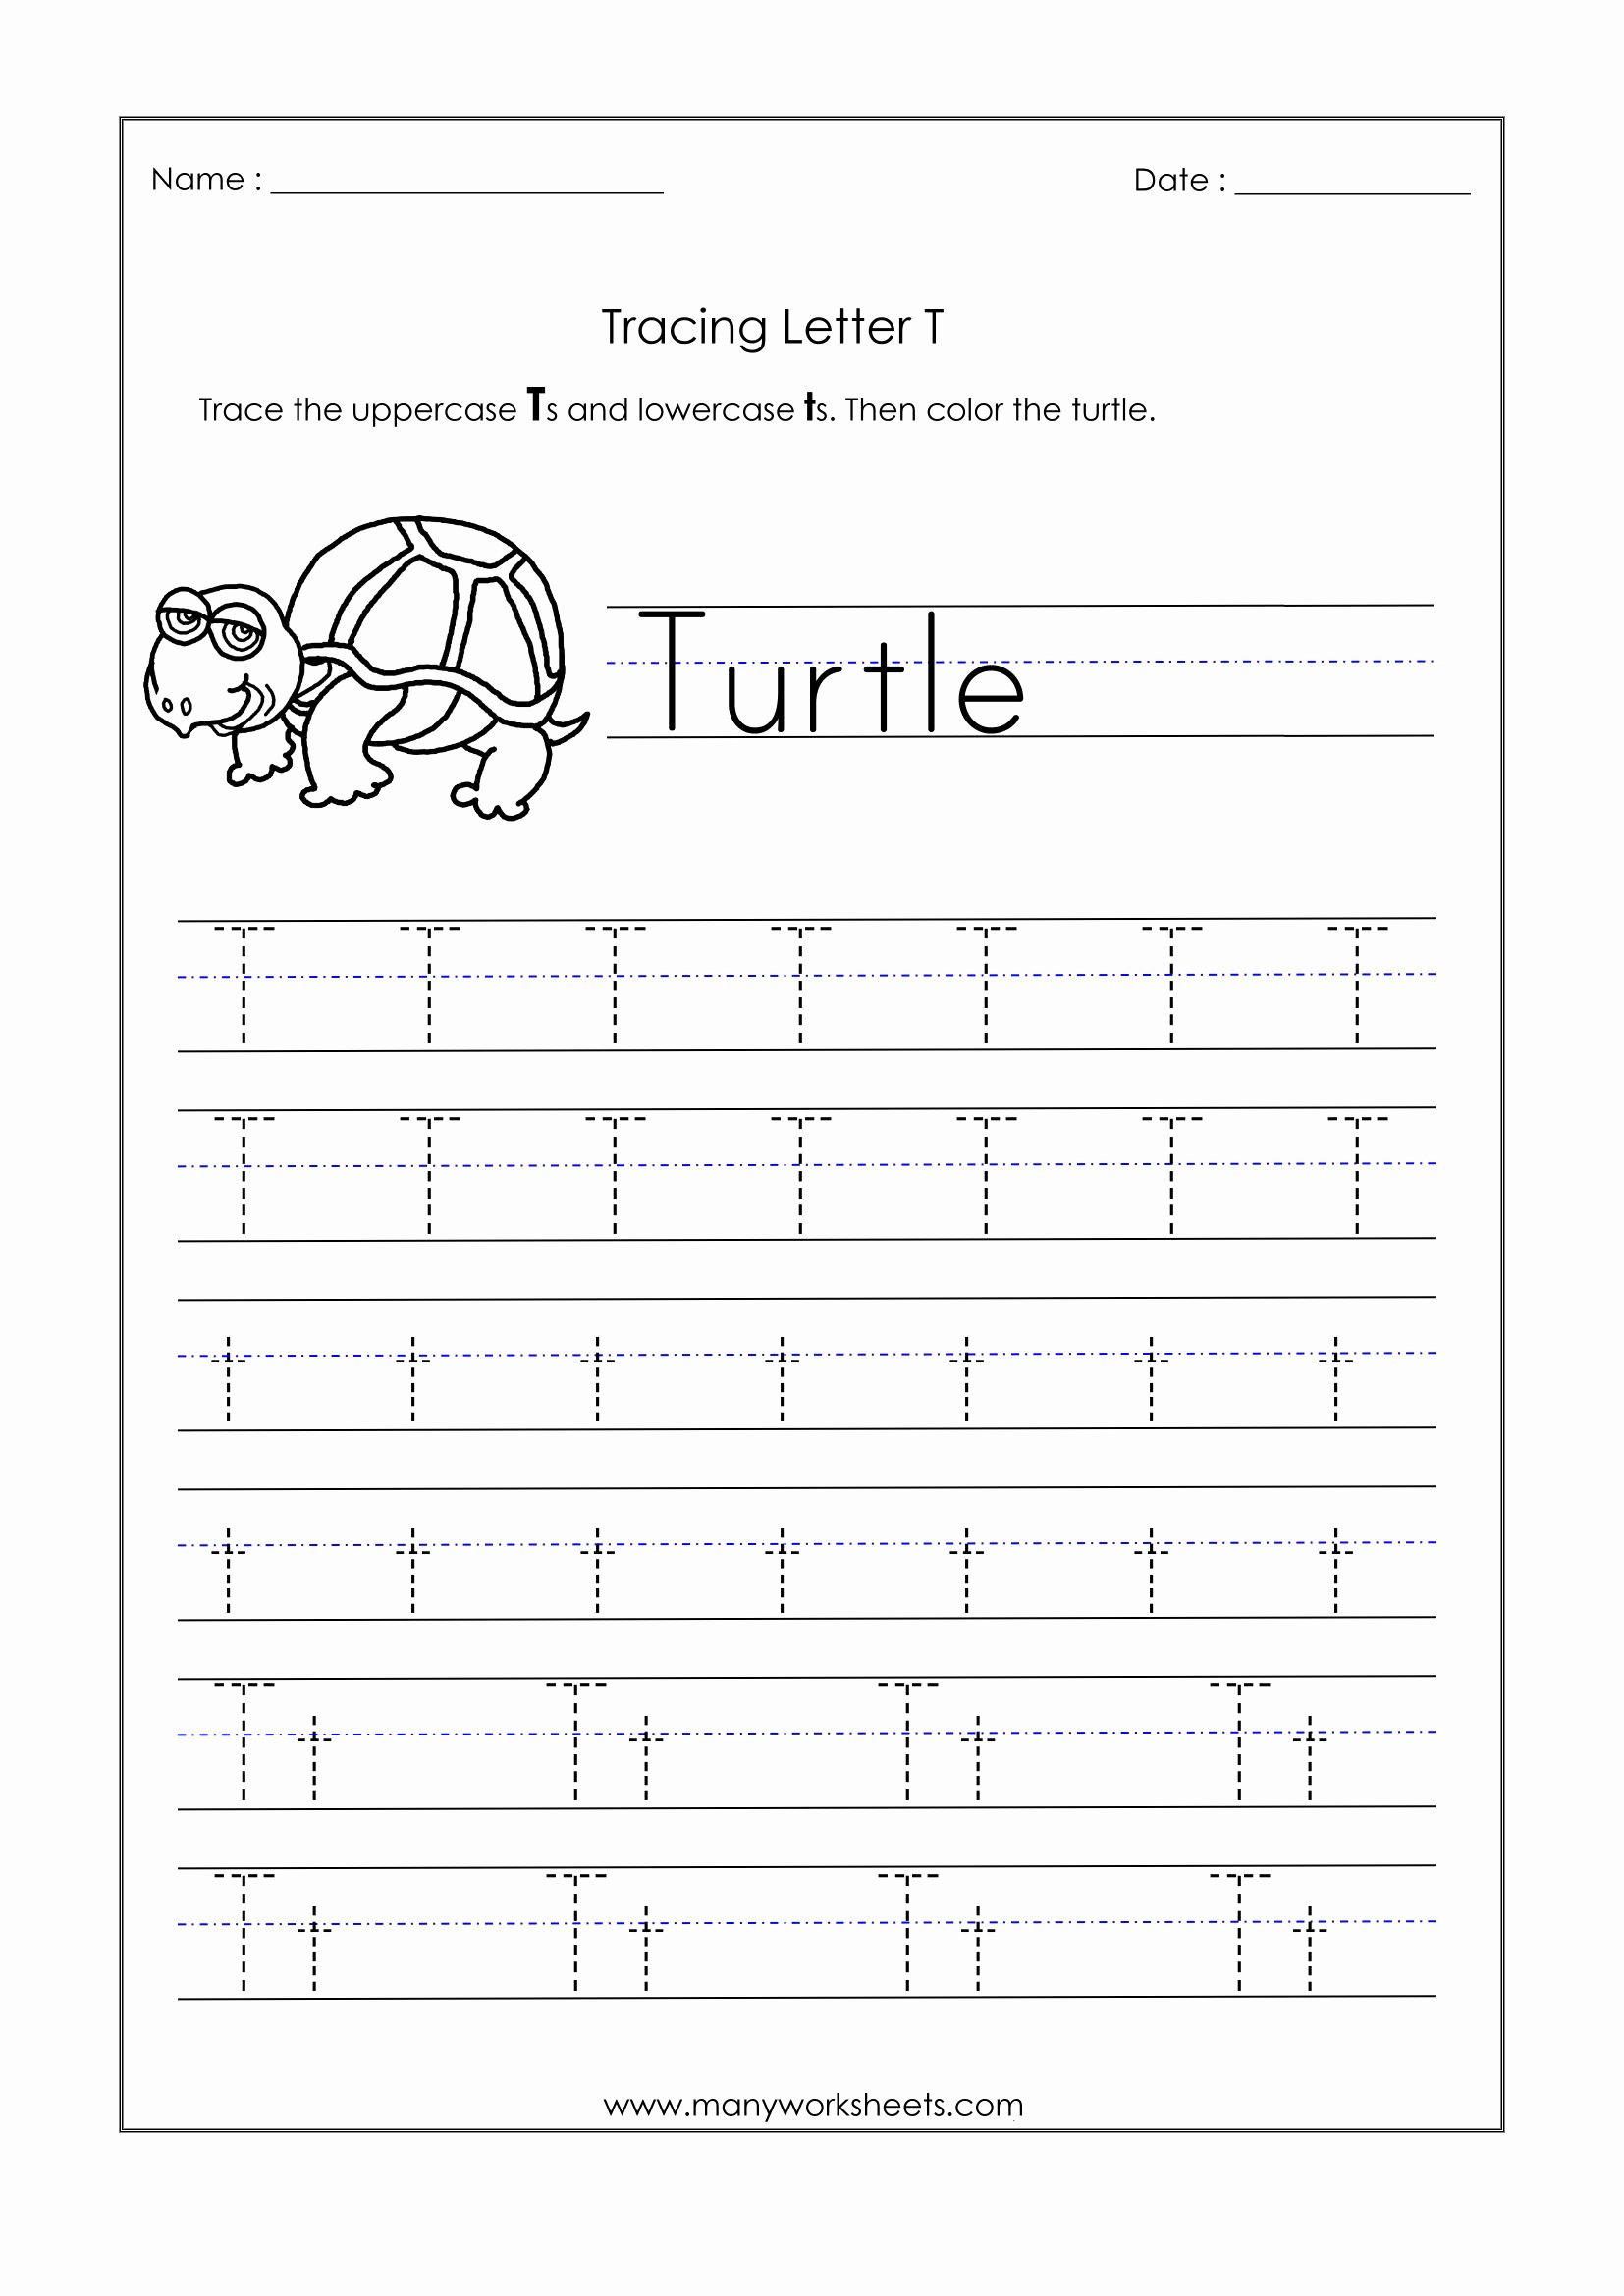 Letter T Worksheets for Preschoolers top Math Worksheet Phenomenal Alphabet Writing Worksheetsor